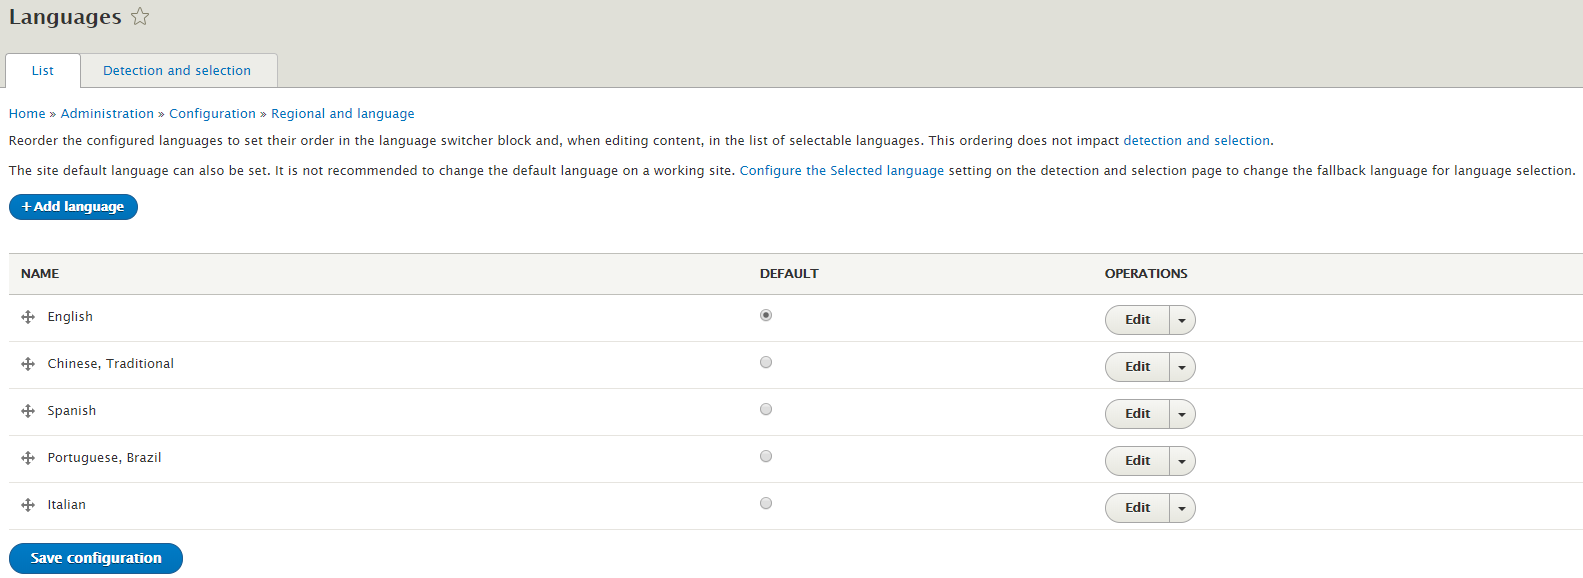 Webdrips Drupal 8 Demo Multilingual Module Language Listing Table